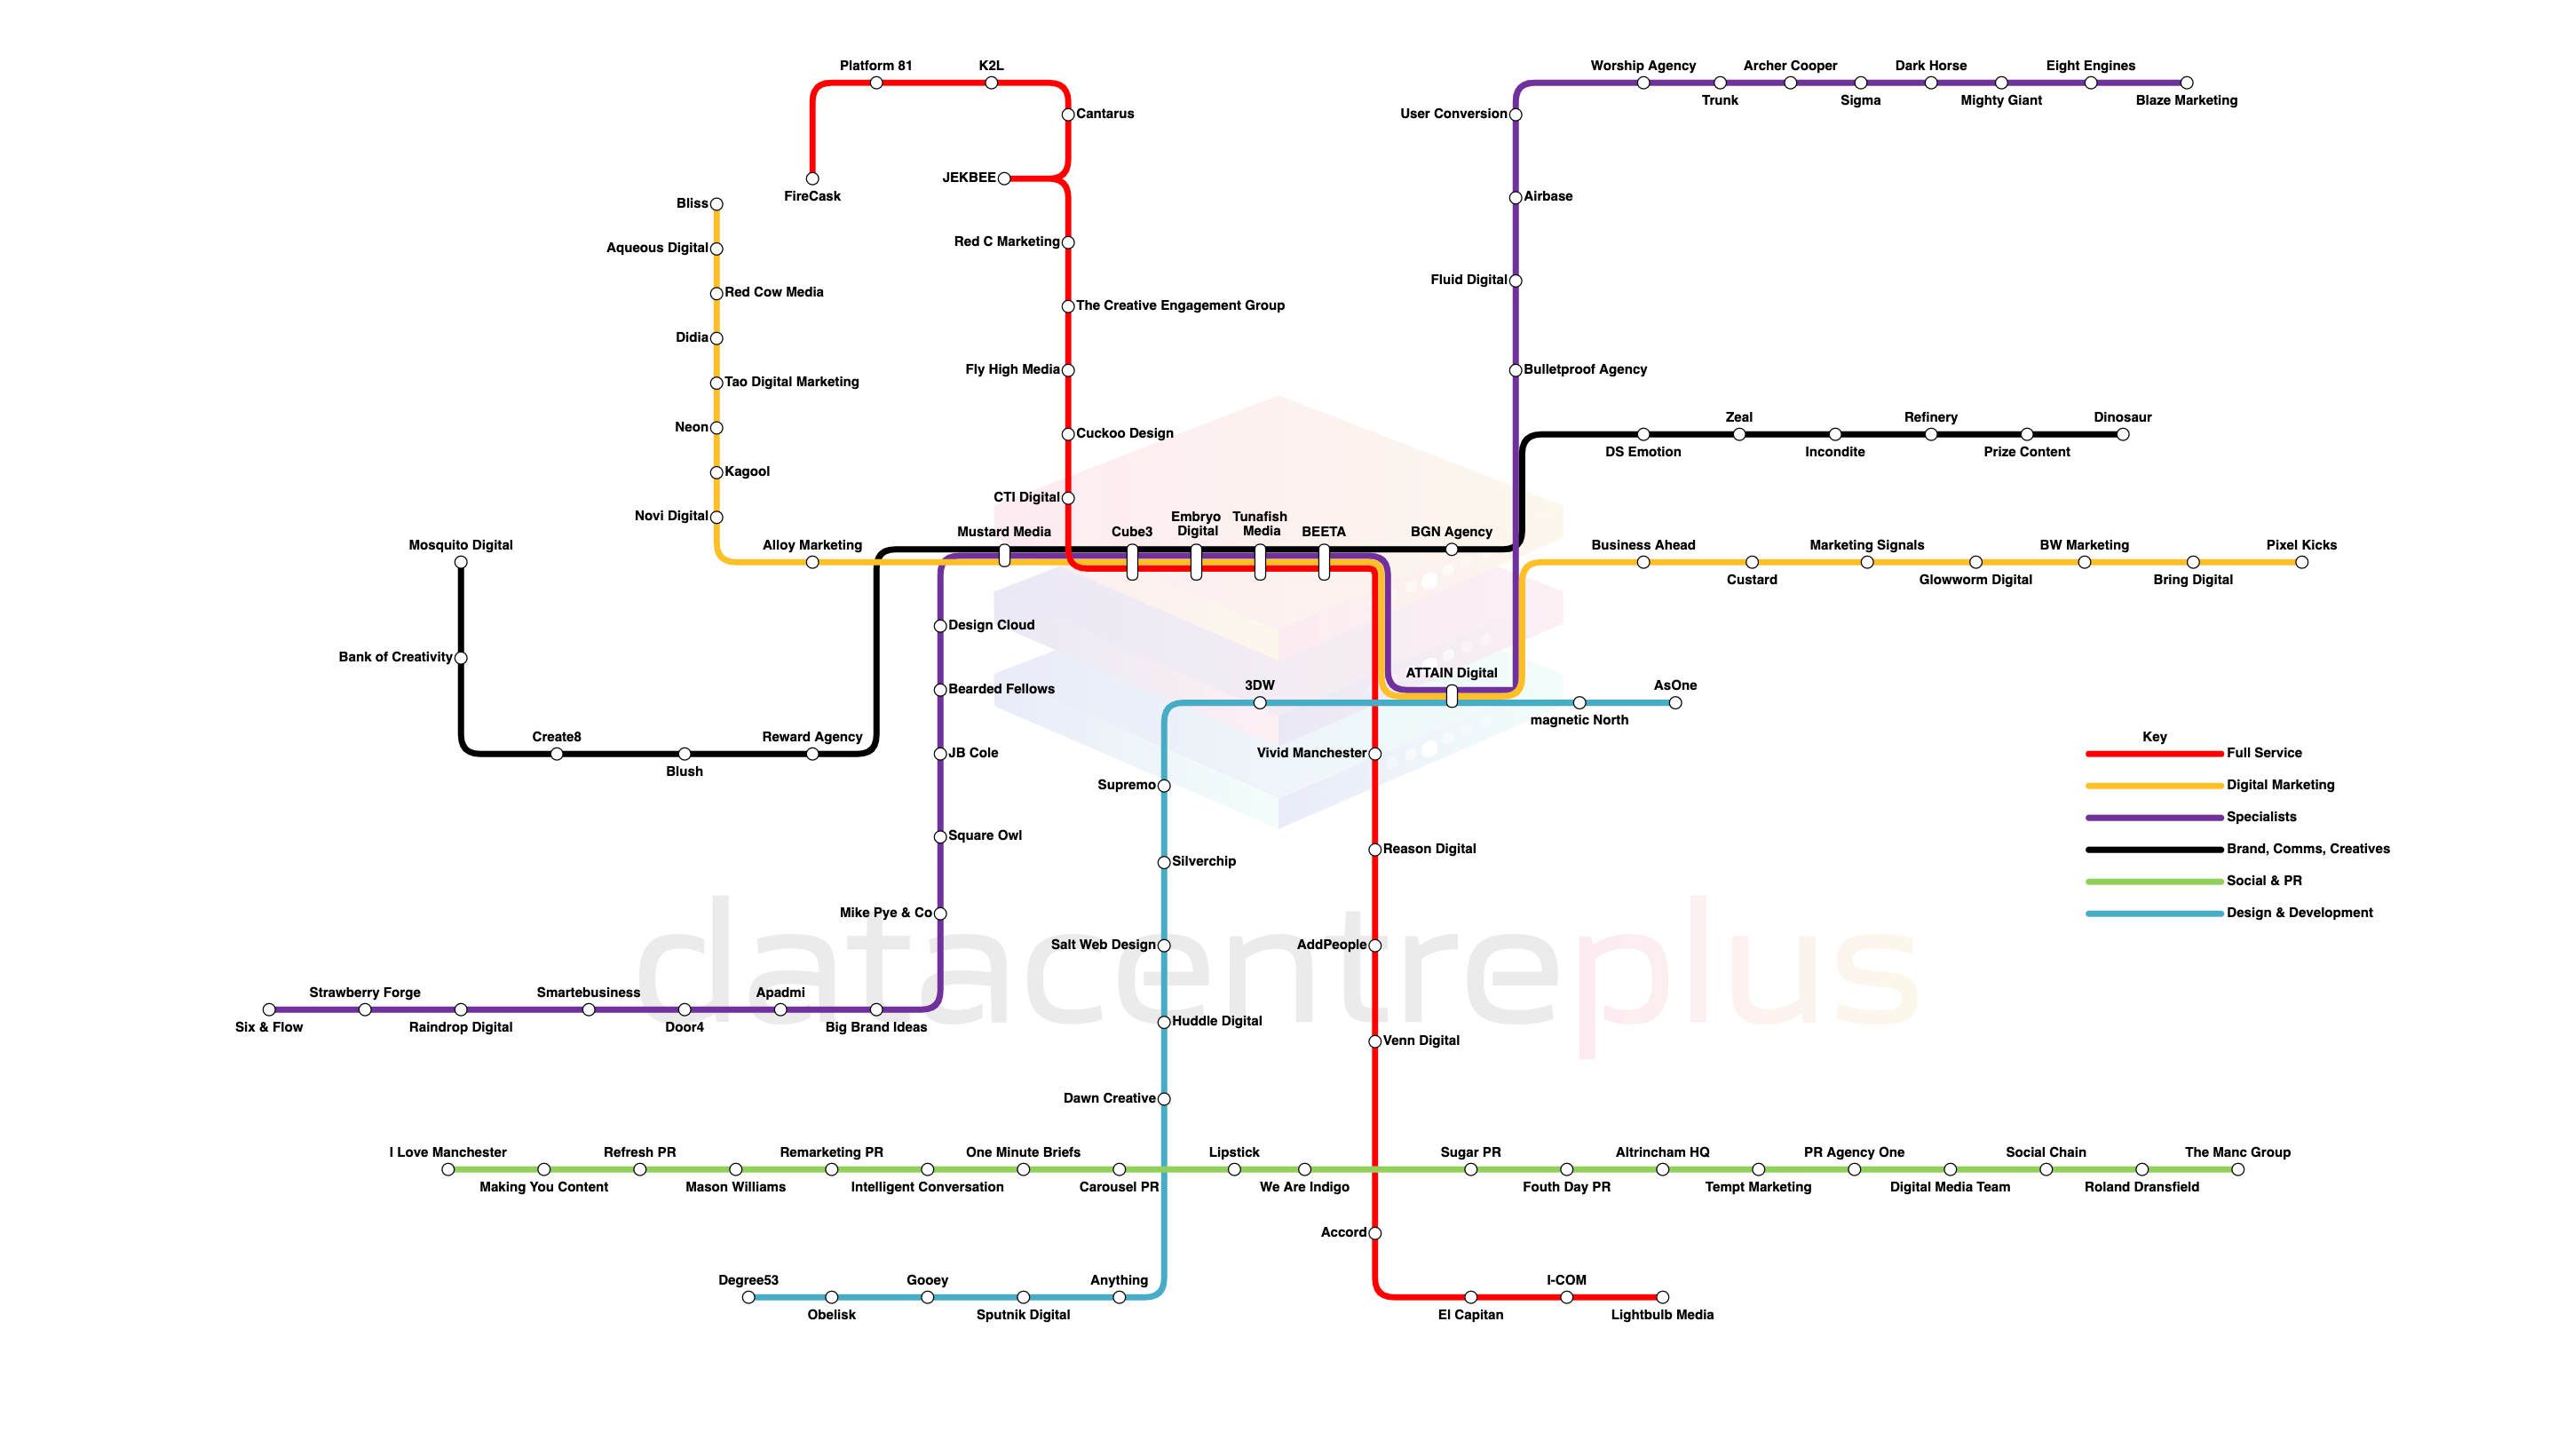 2020 interactive agency tram map